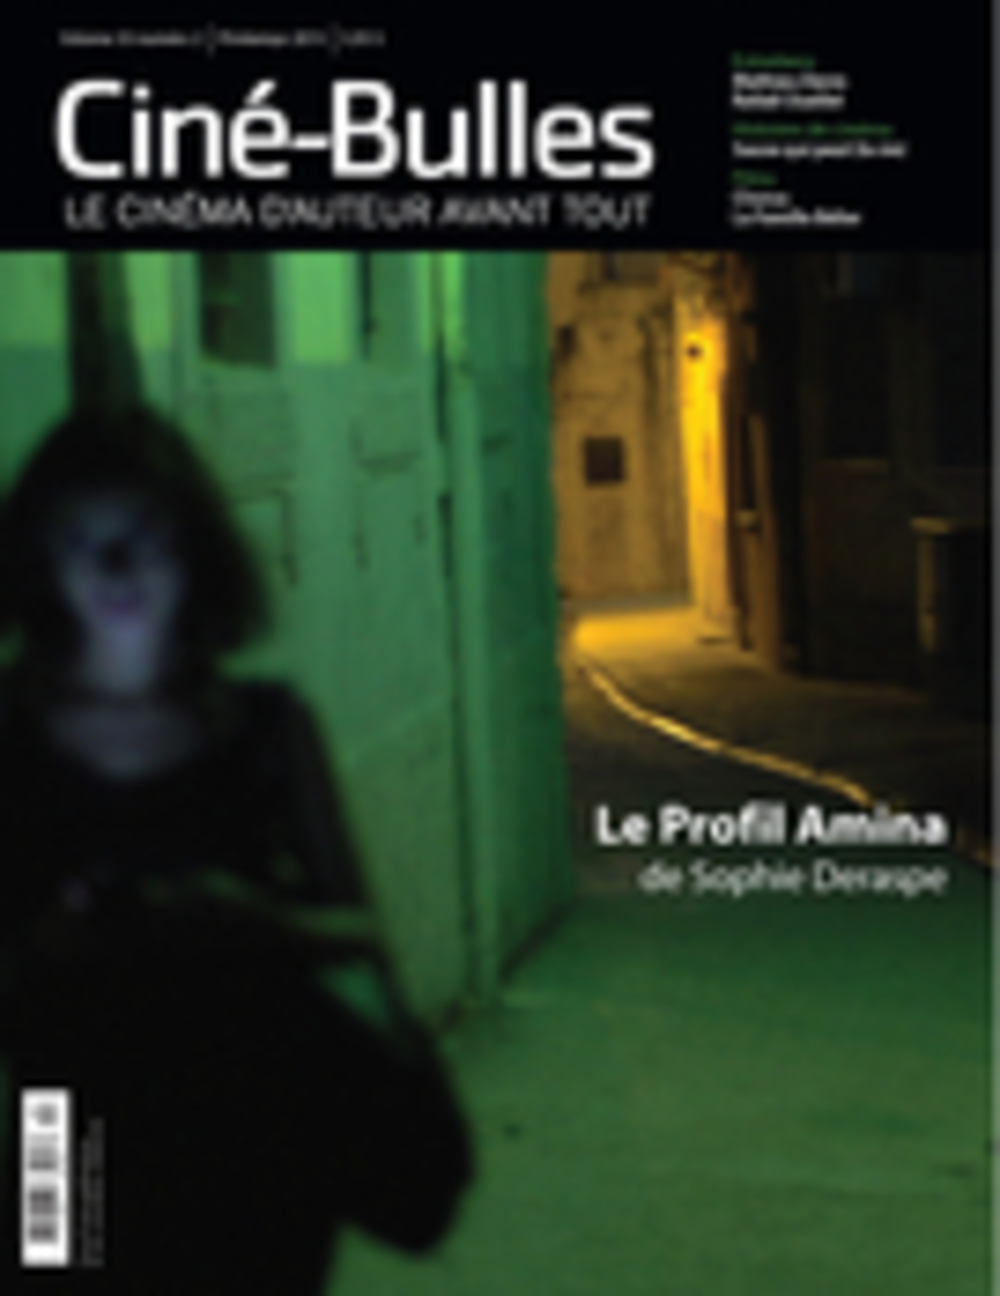 Ciné-Bulles. Vol. 33 No. 2, Printemps 2015